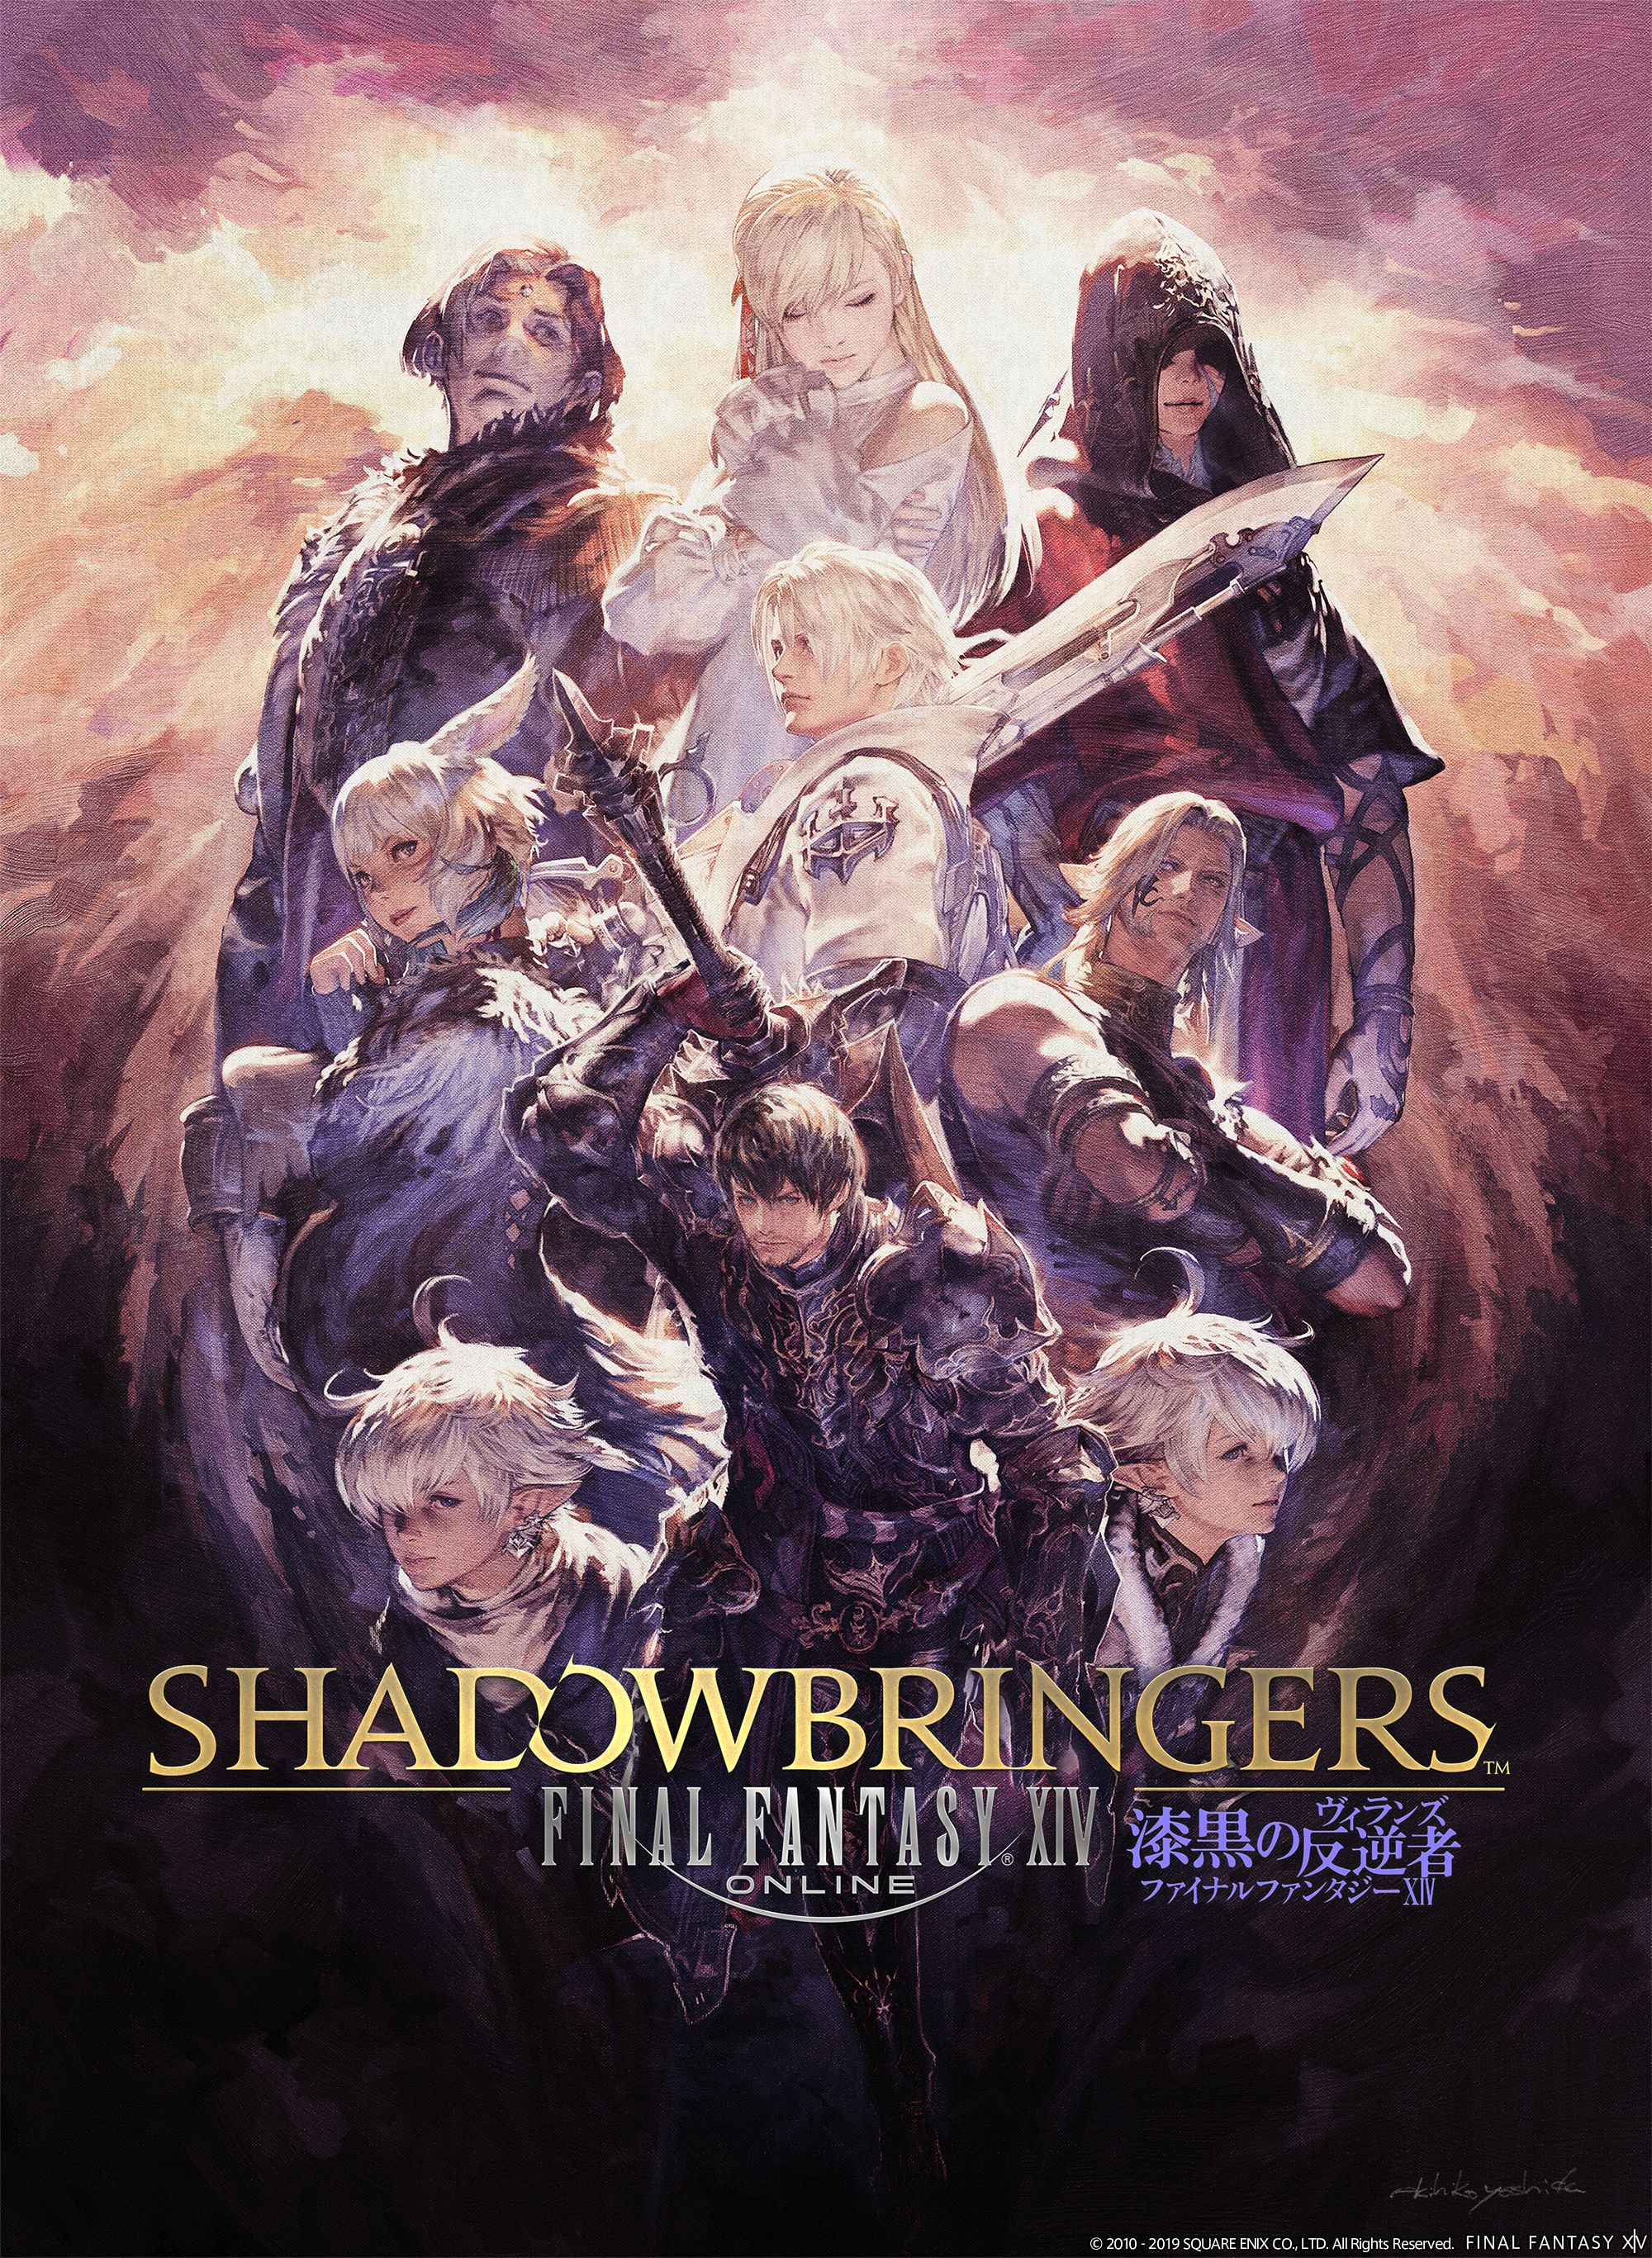 Final Fantasy XIV: Shadowbringers launches July 2 with Gunbreaker